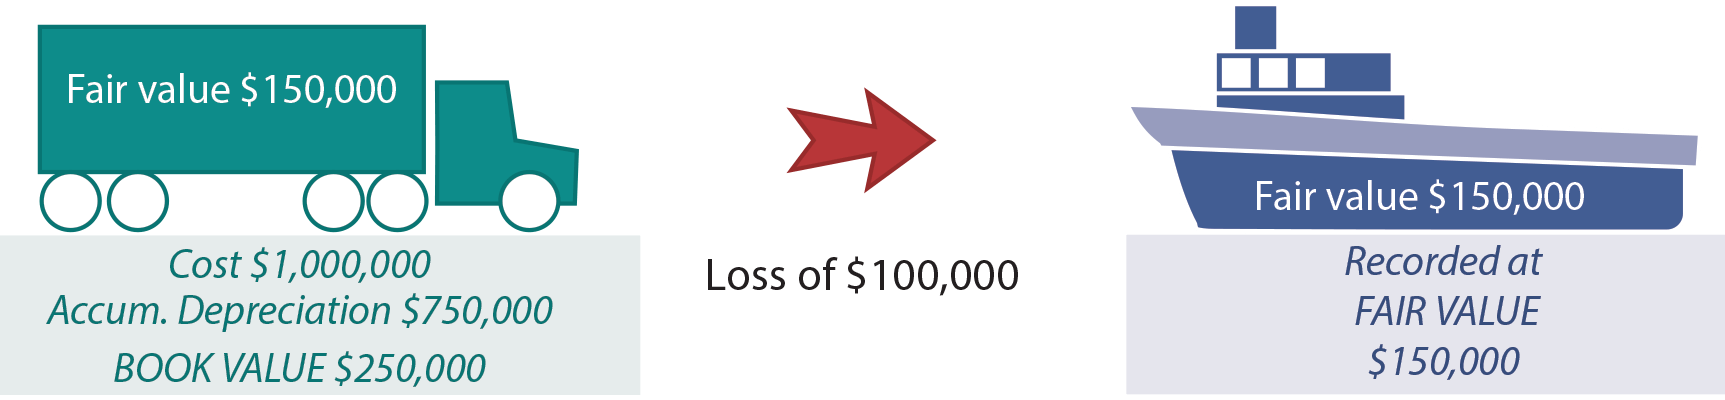 Loss Implied illustration